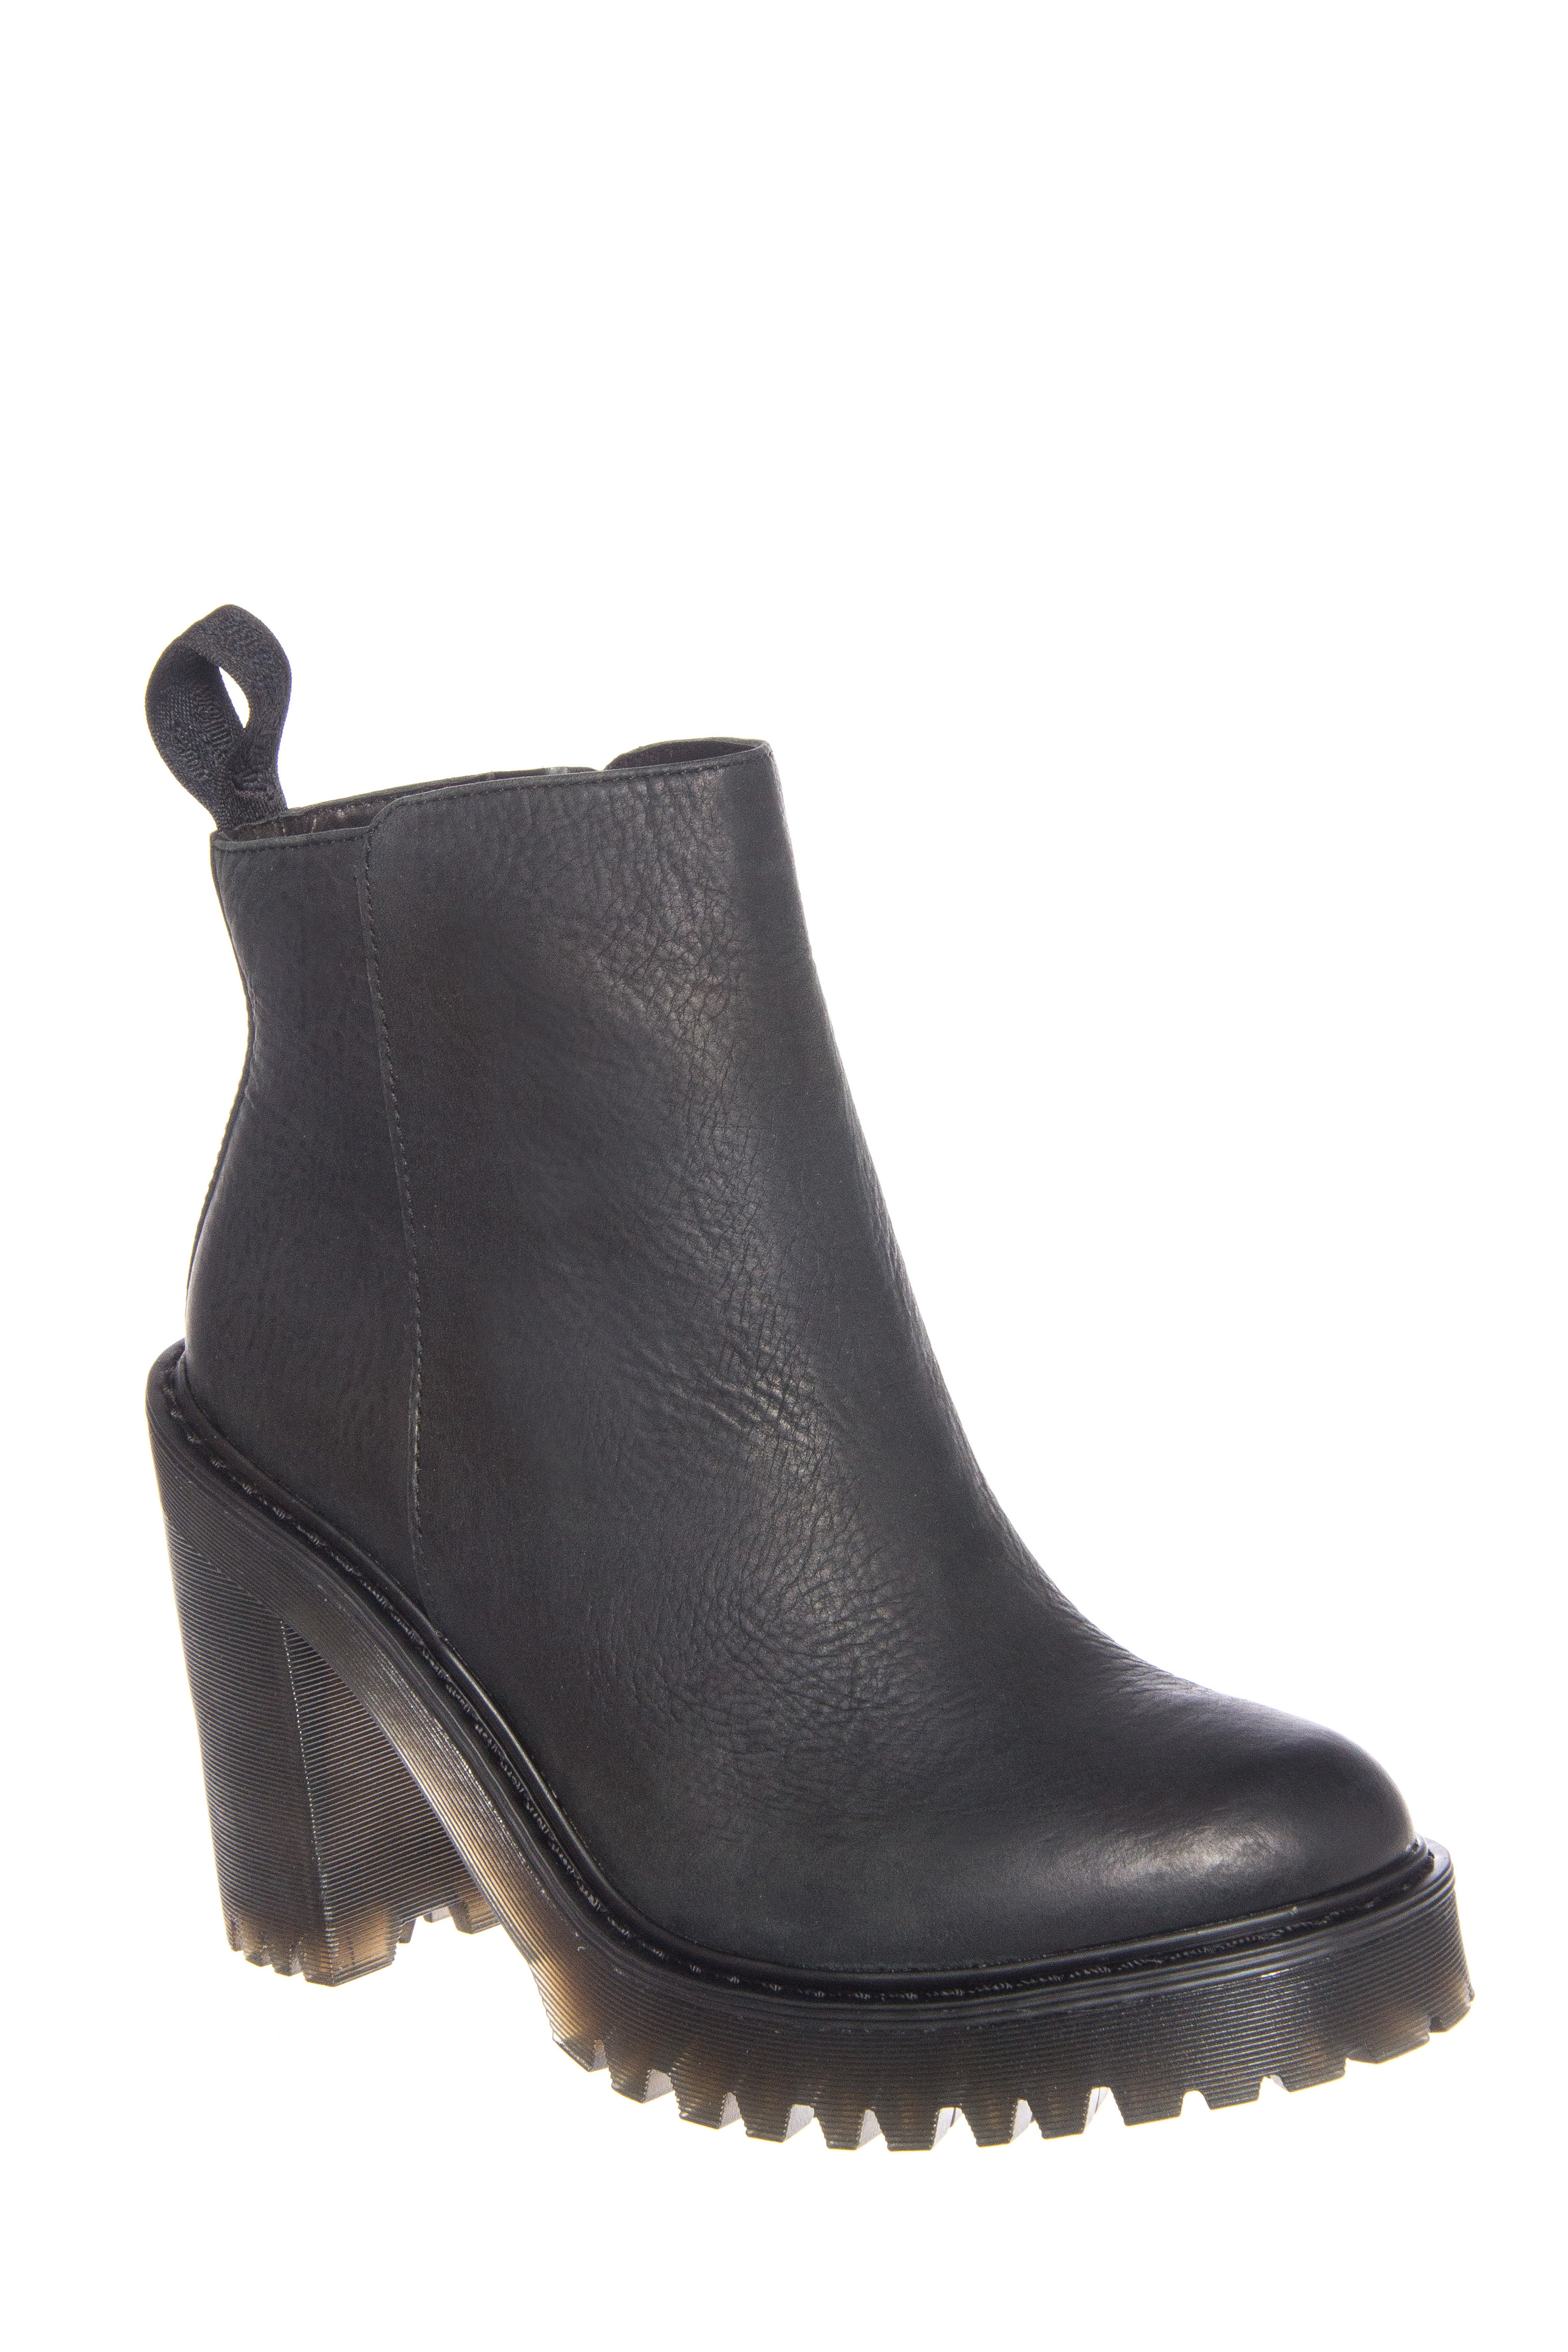 Dr. Martens Magdalena Fur-Lined High Heel Zip Booties - Black